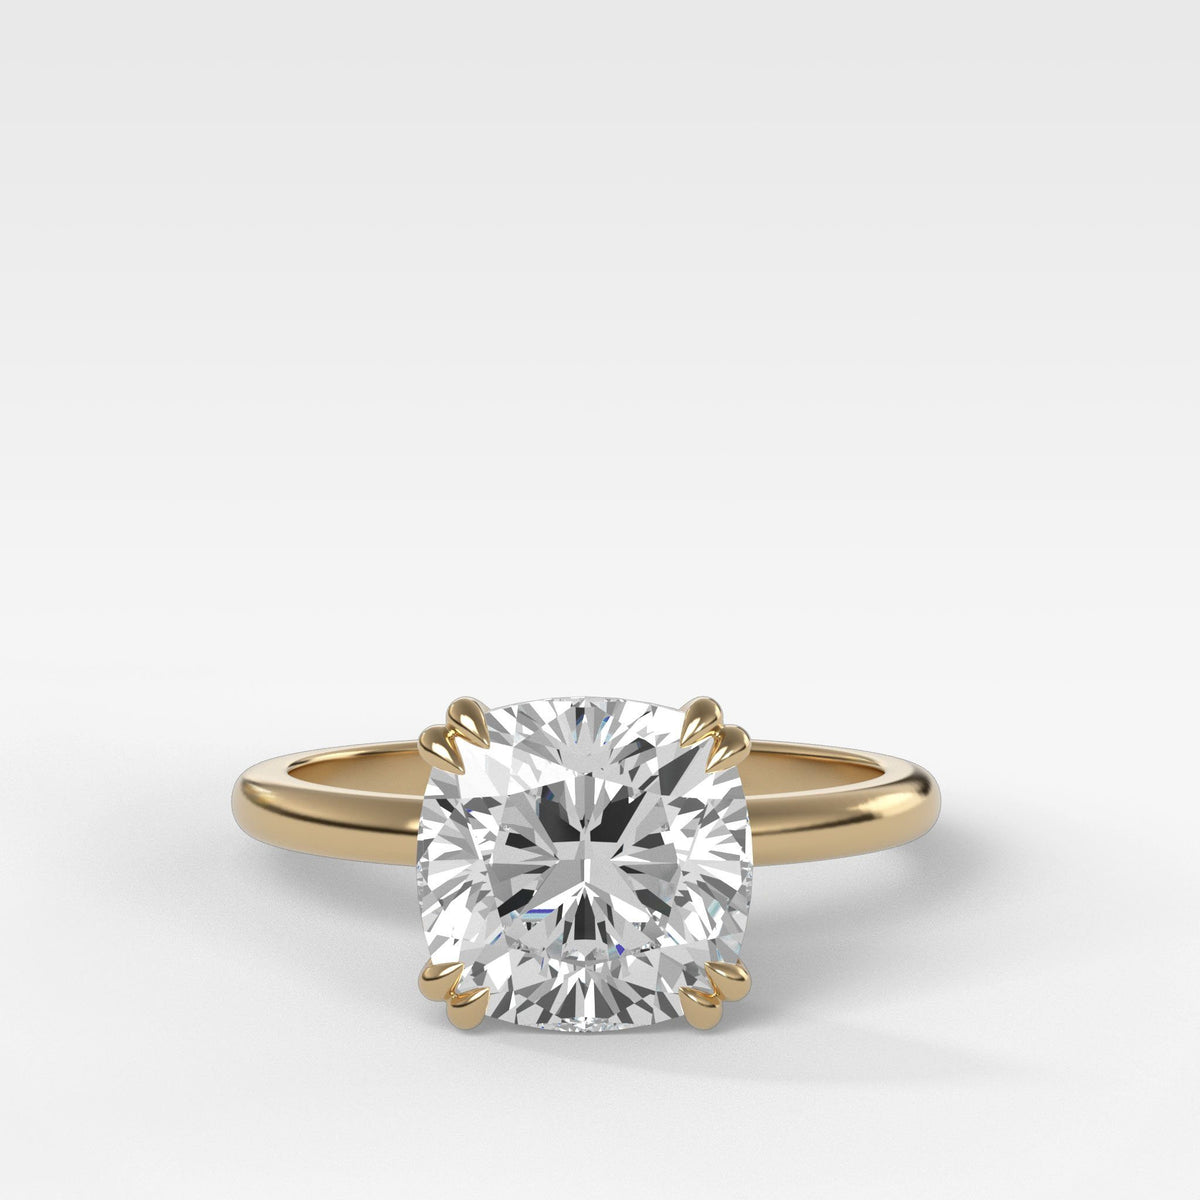 Signature Cathedral Solitaire With Cushion Cut in Yellow Gold by Good Stone